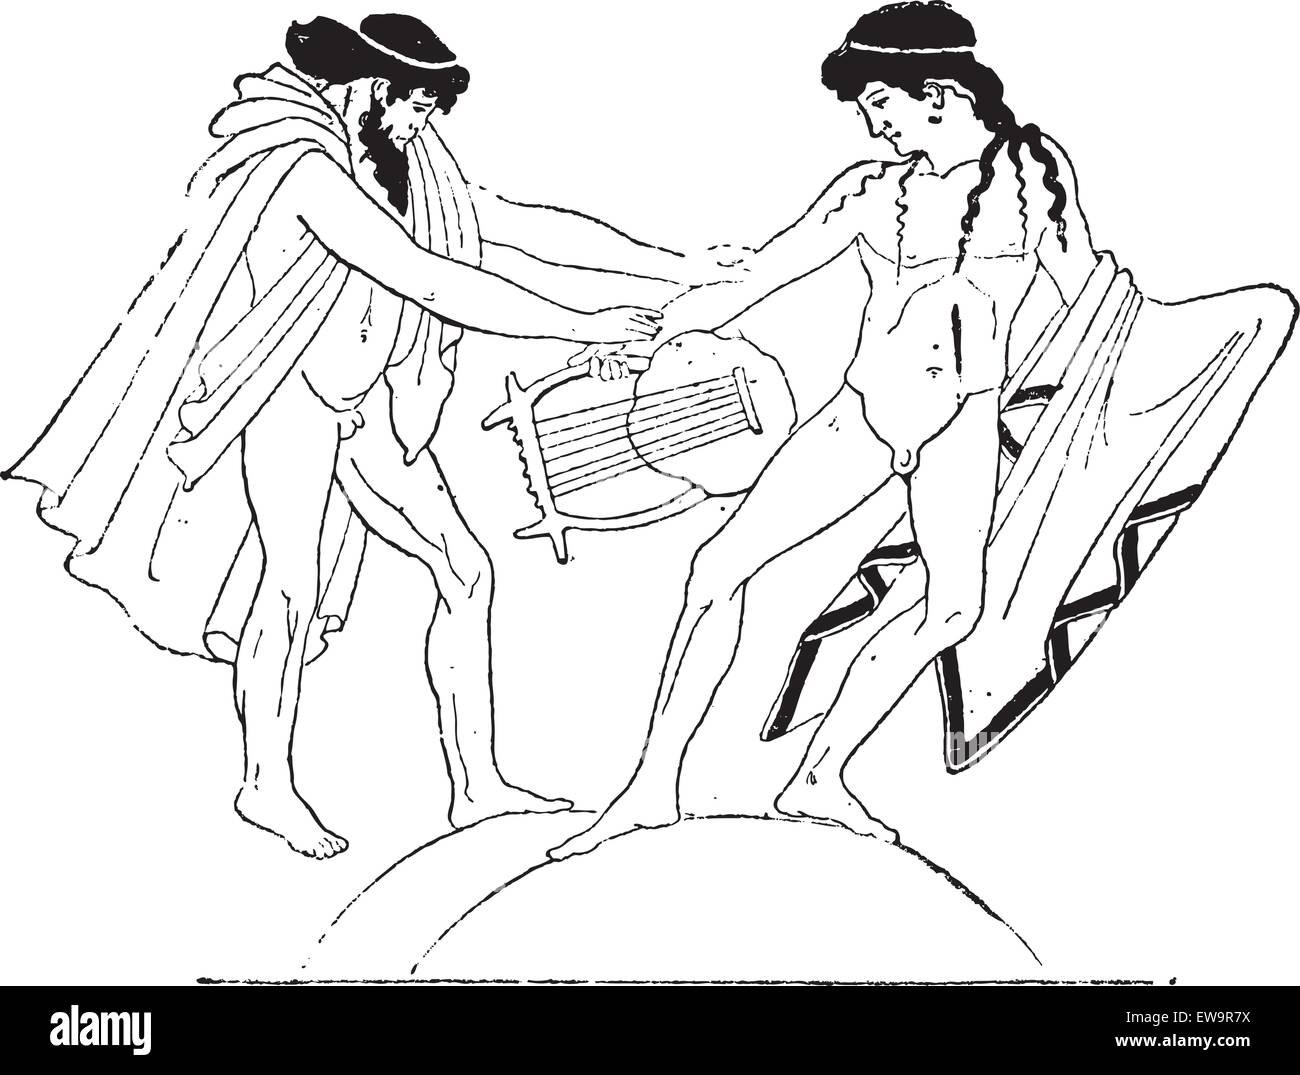 Vase Painting of Apollo and Bacchus Fighting over a Lyre, found at the National Library in Paris, France, vintage - Stock Vector